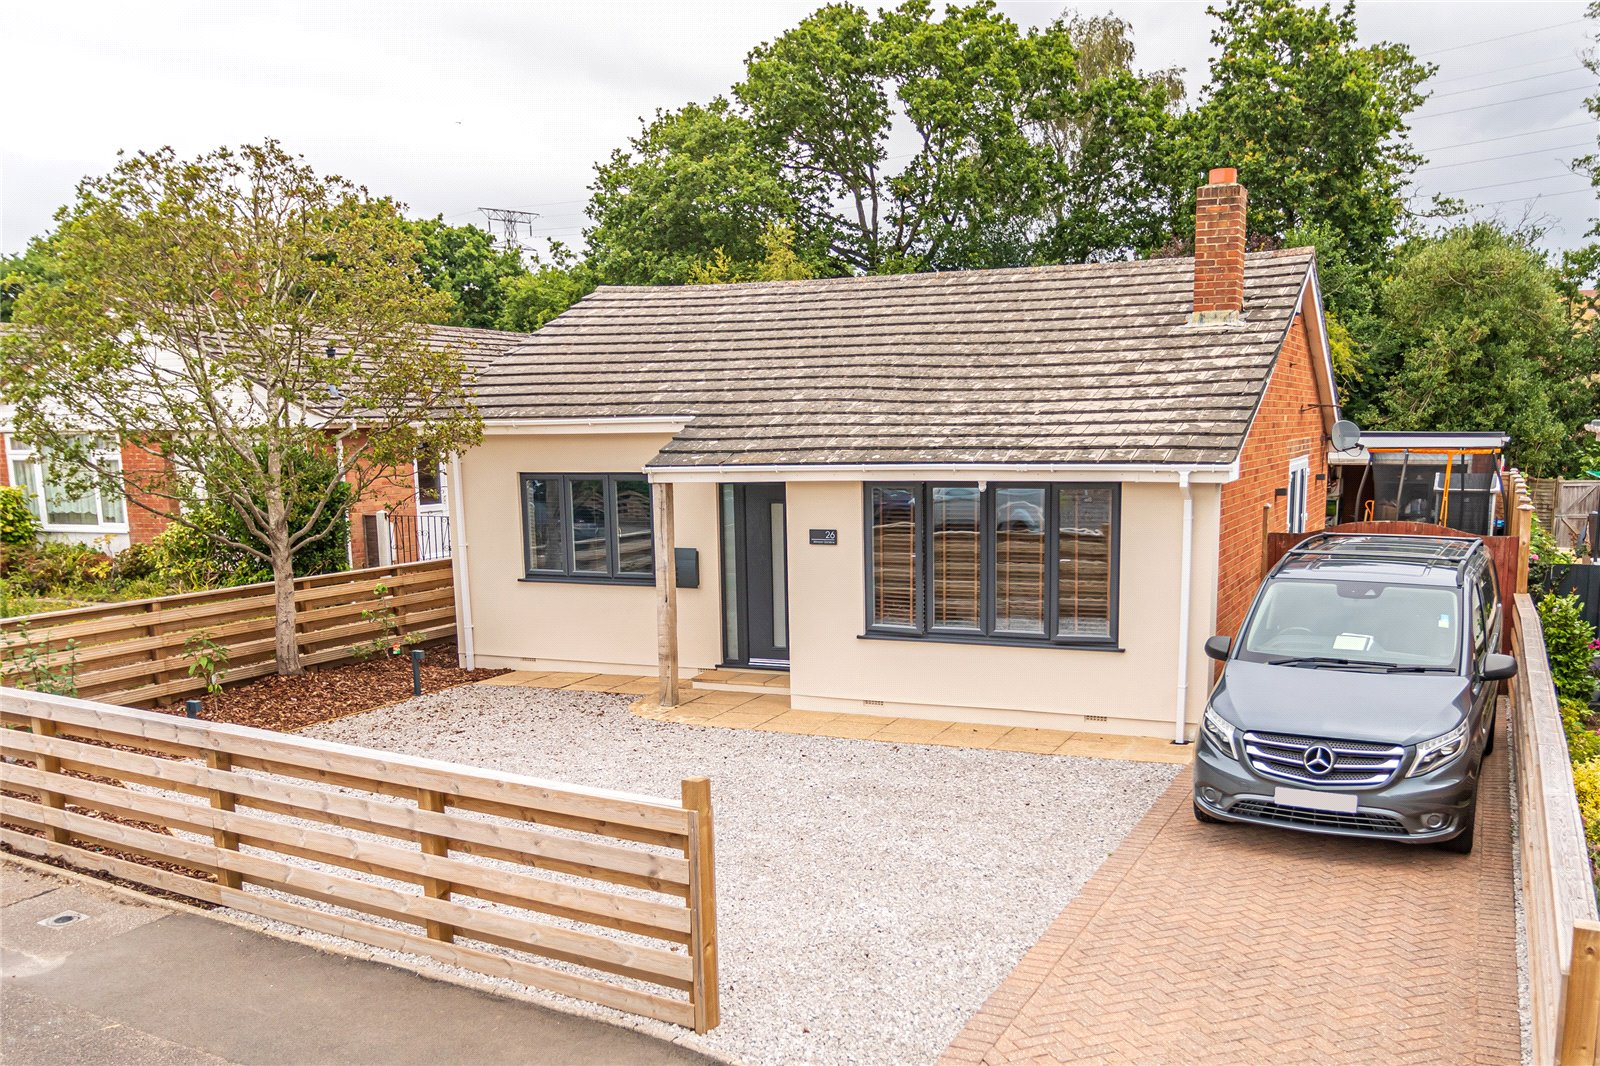 3 bed bungalow for sale in Winston Gardens, Branksome, BH12